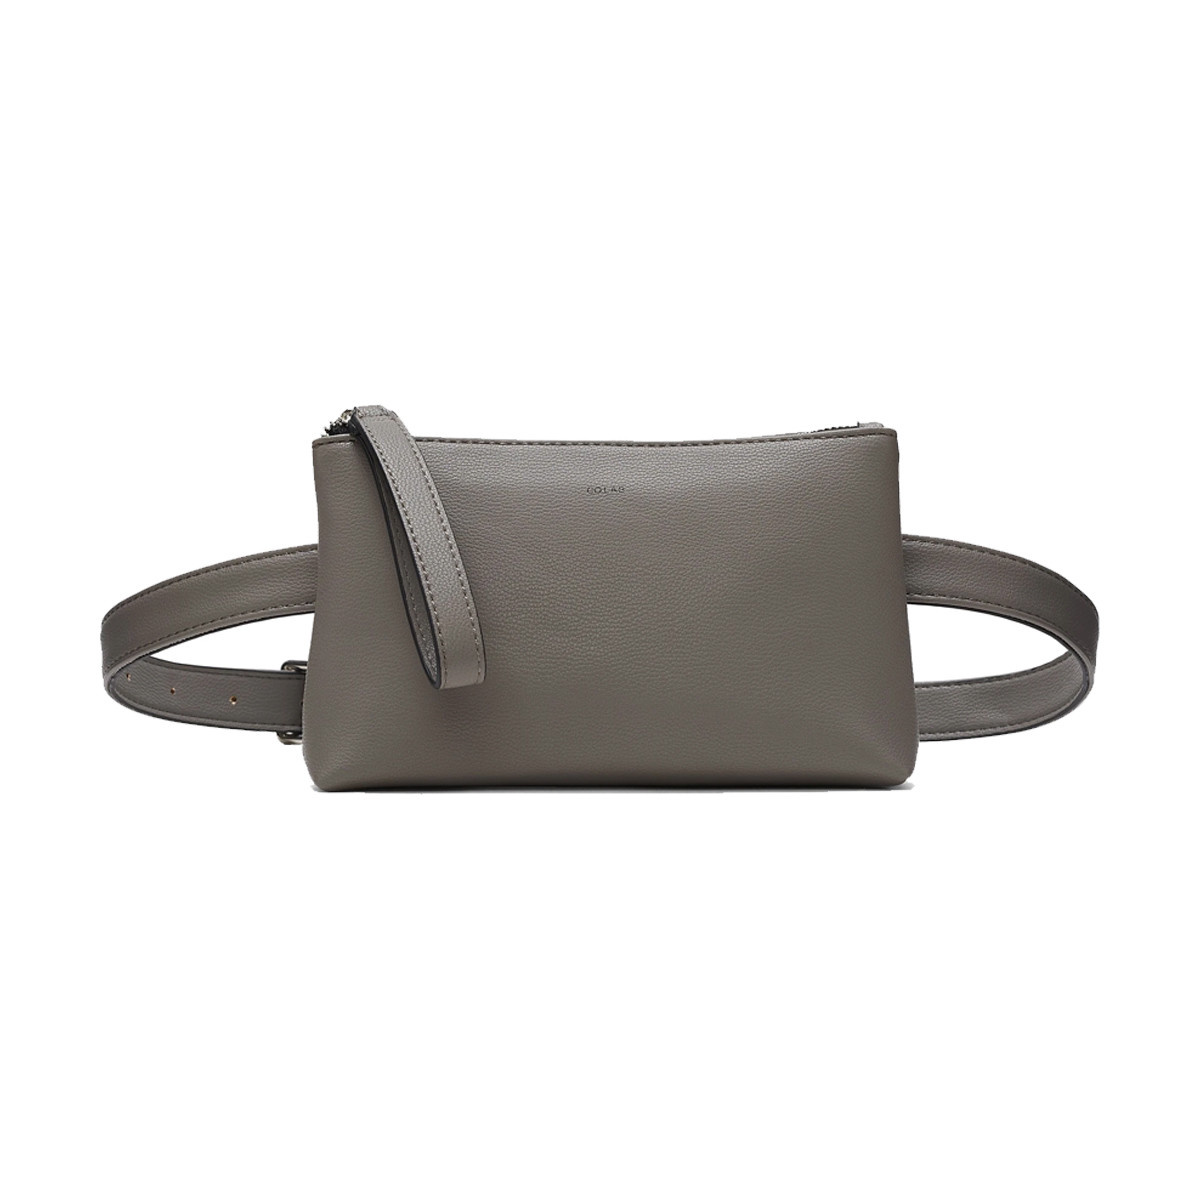 Colab Colab Pebble 2.0 Belt Bag